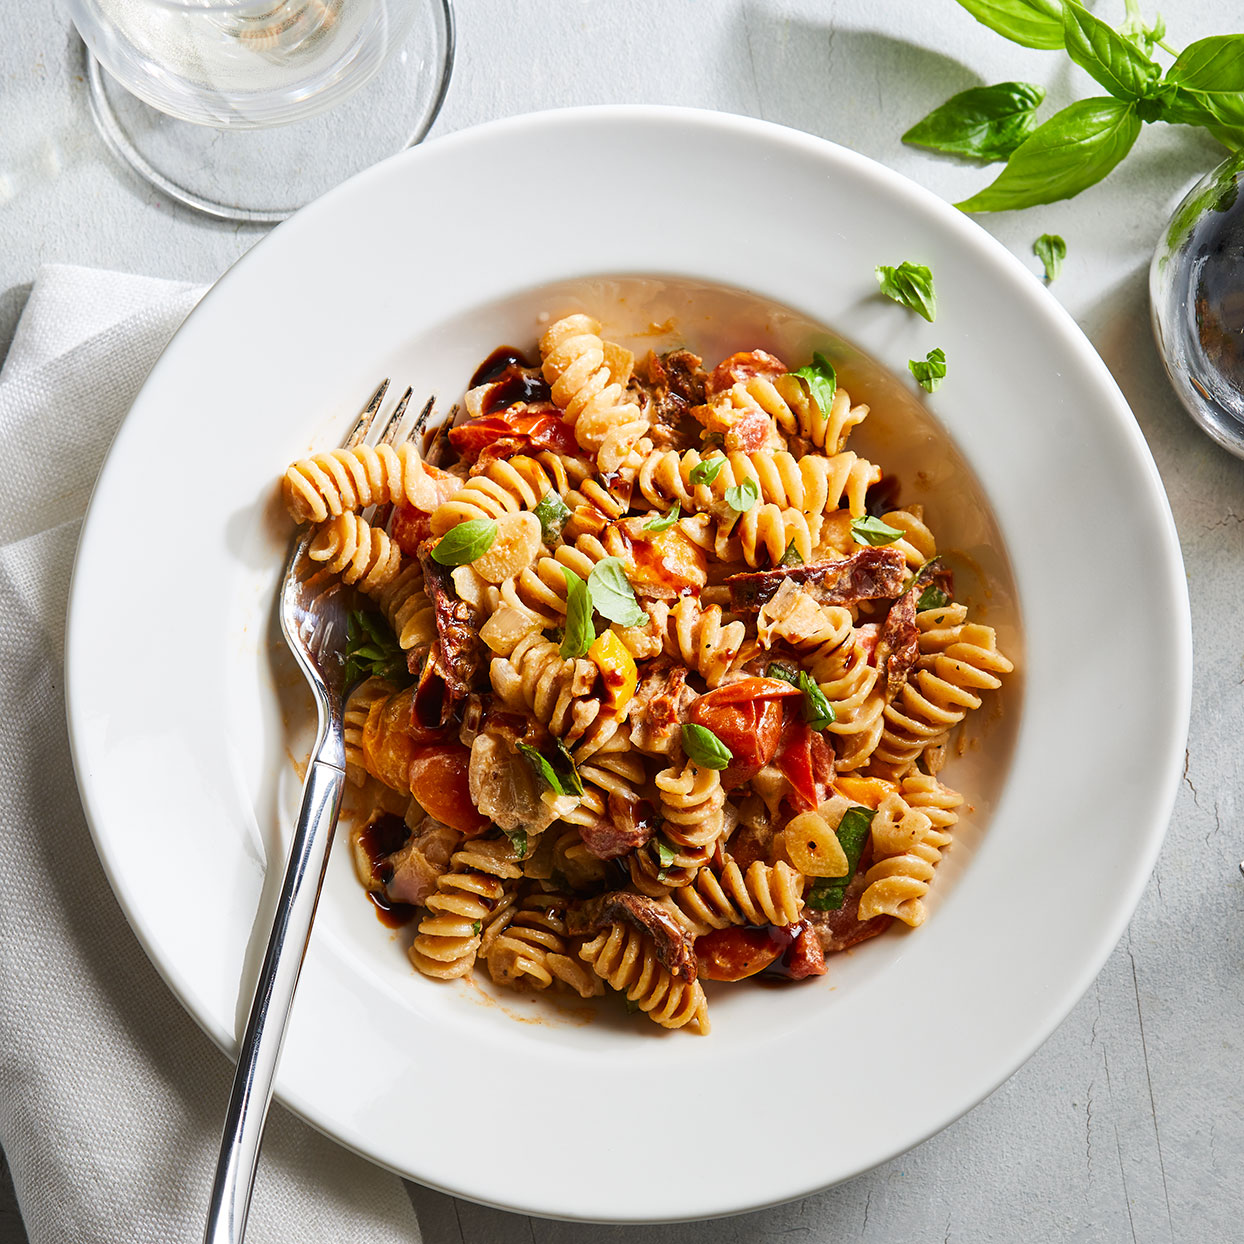 Got garden-fresh tomatoes? This simple vegetarian pasta is a great place to use them up. Both large tomatoes and cherry tomatoes work well. The addition of sun-dried tomatoes and Parmesan cheese elevates the flavor, while a drizzle of sweet balsamic glaze at the end adds a sweet note.